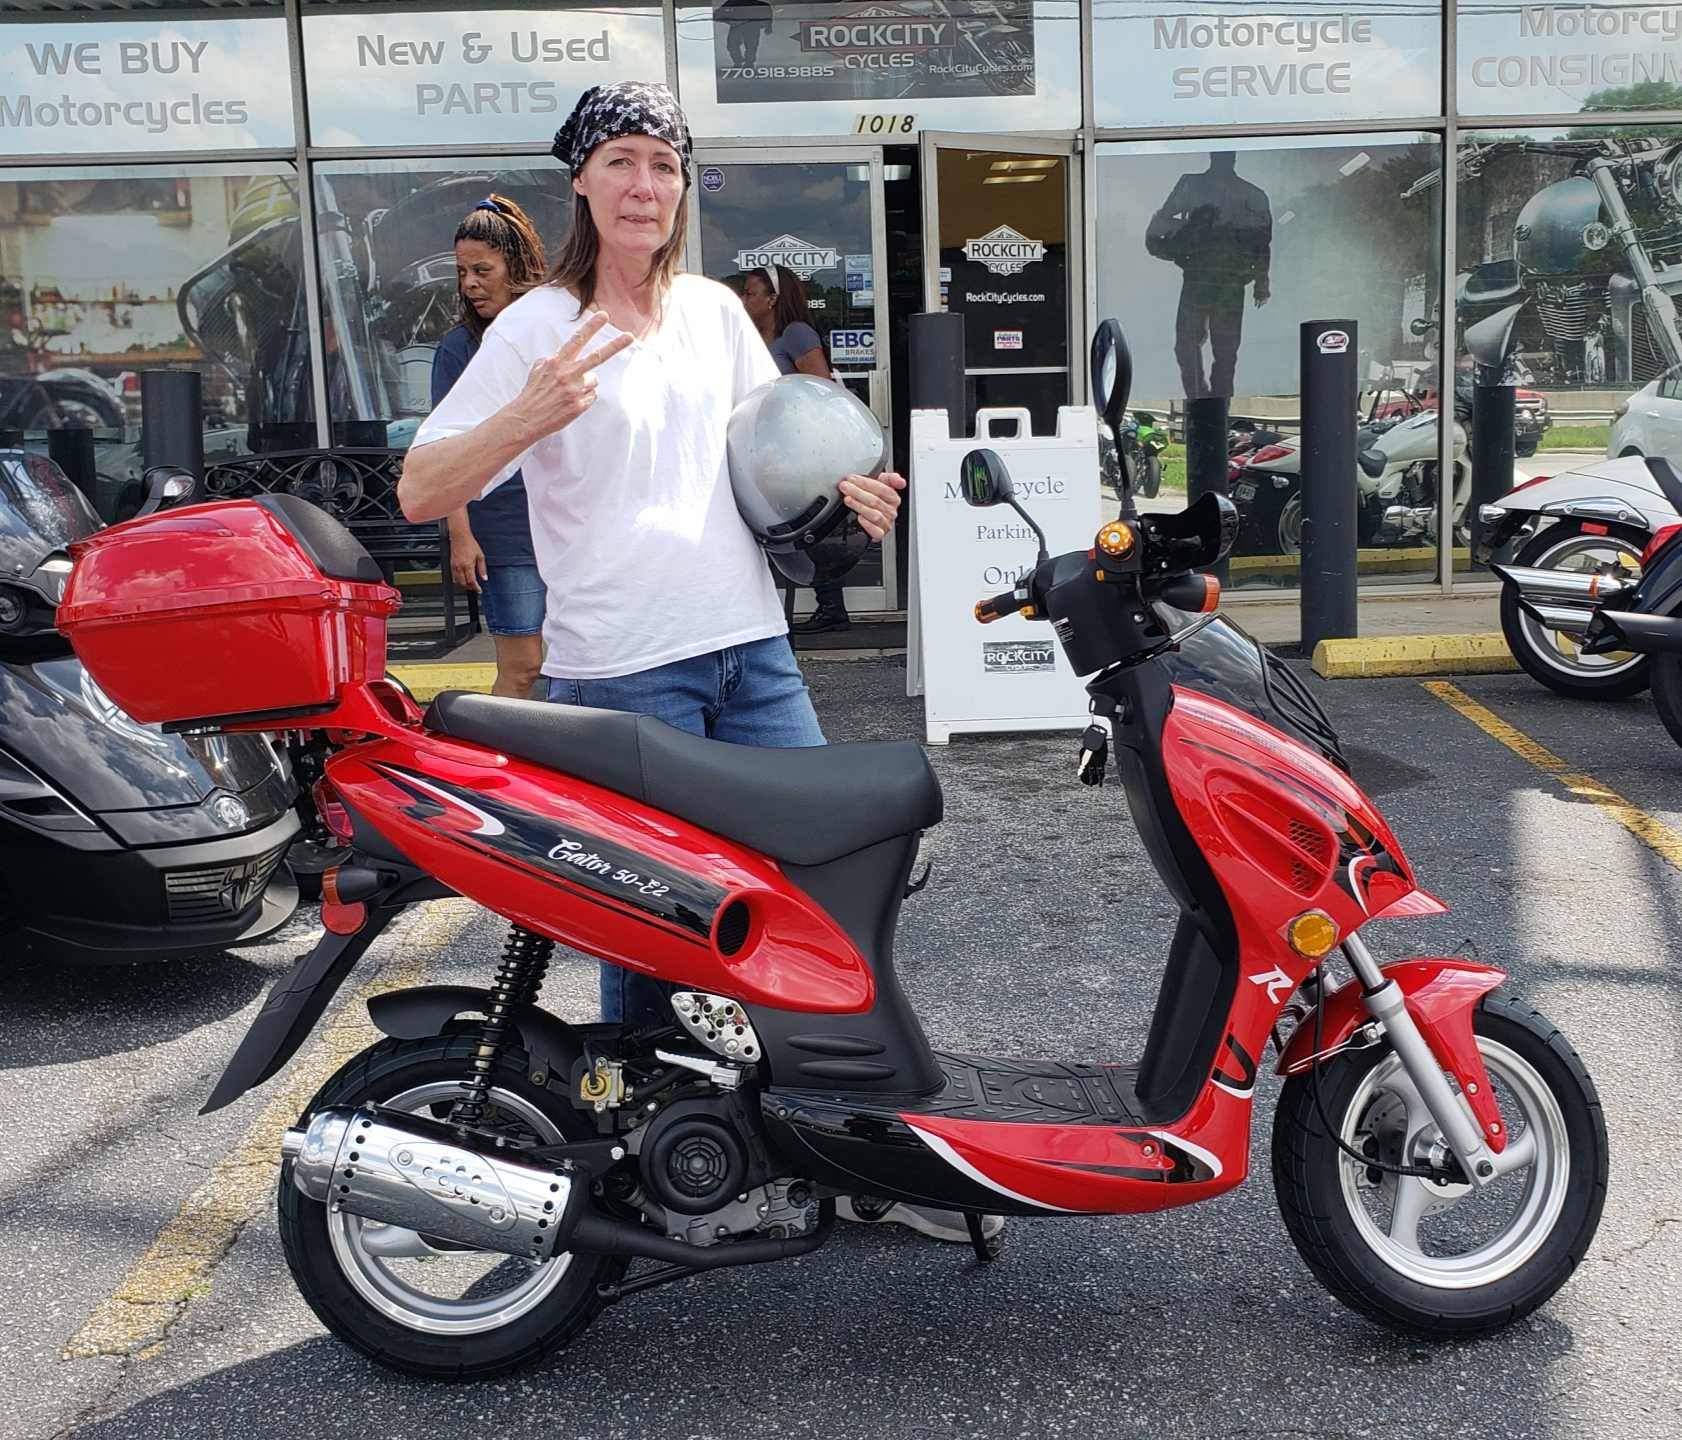 Lisa T. with her 2018 50cc Scooter